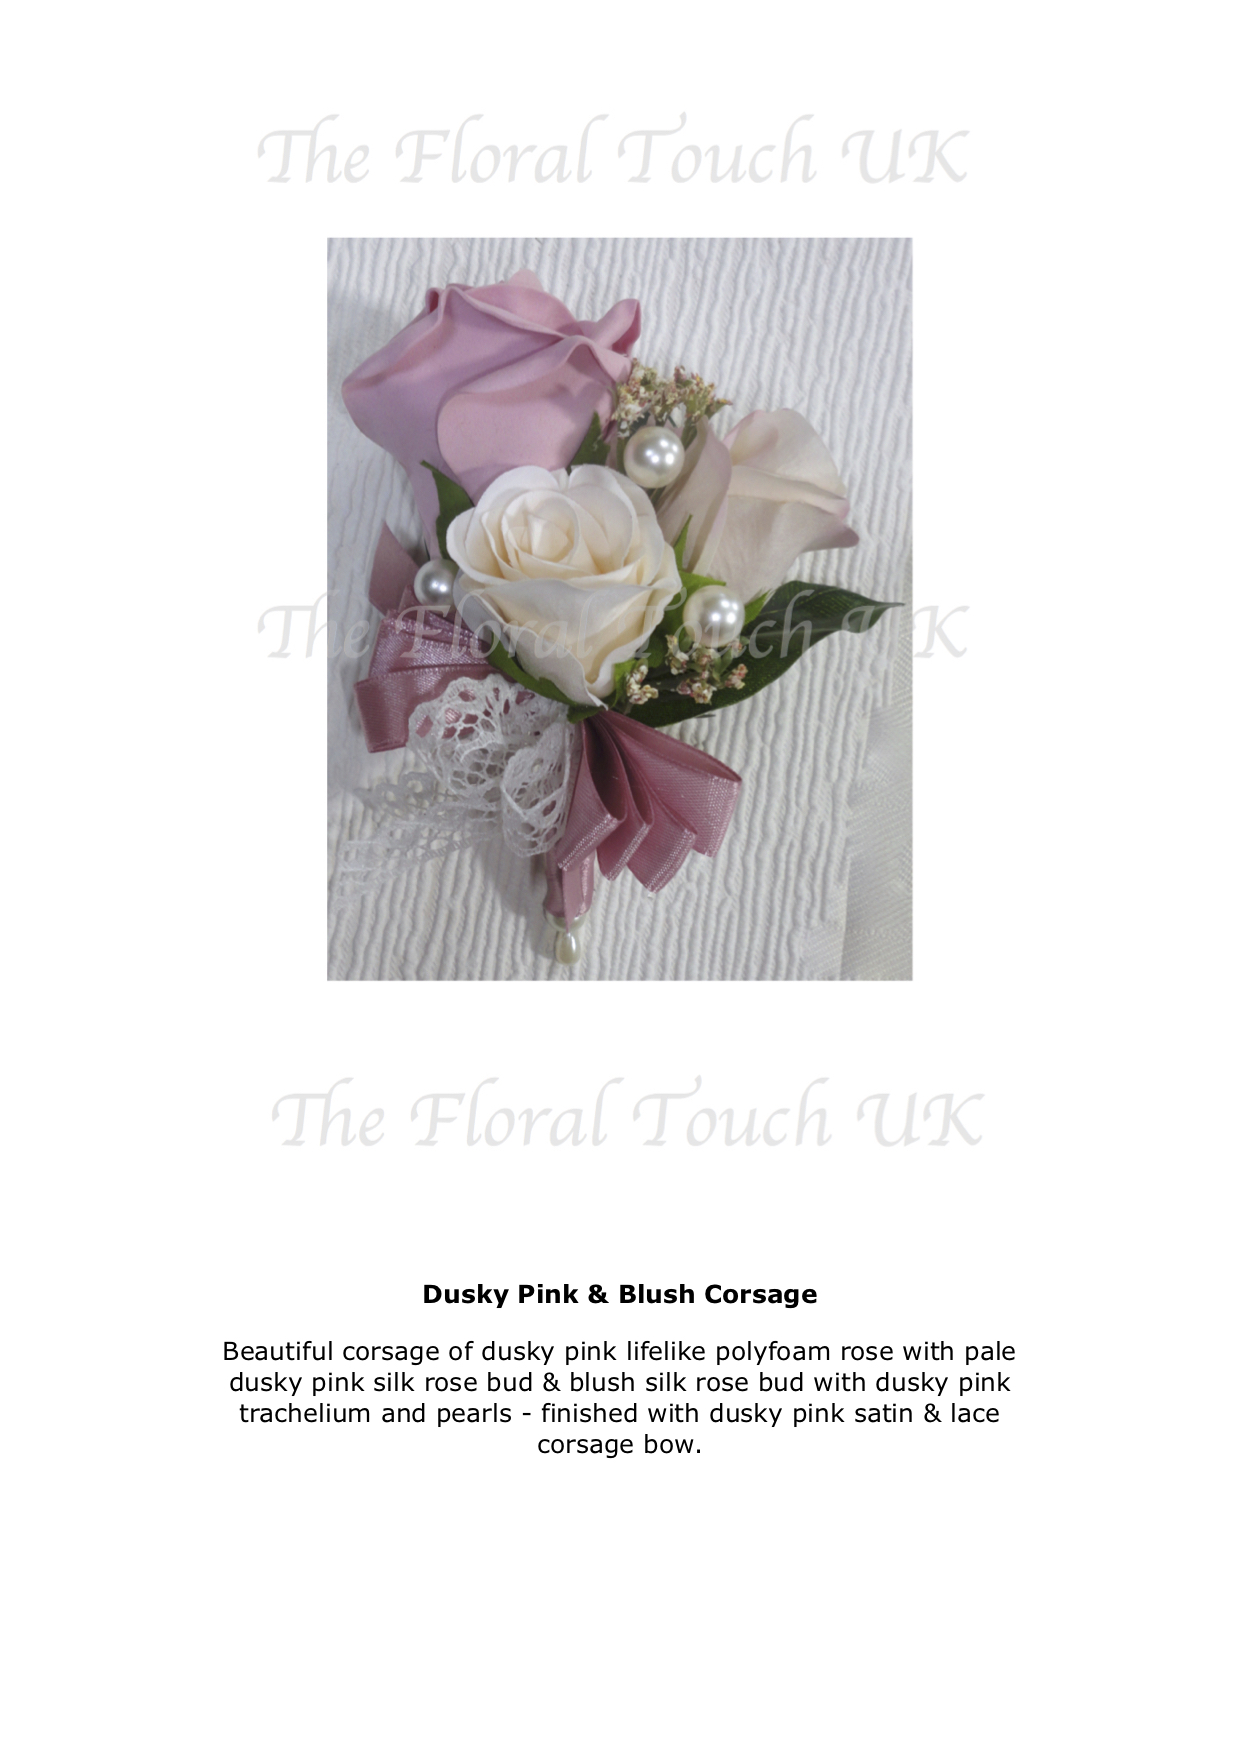 Pin On Corsage For Weddings Silk Corsage The Floral Touch Uk